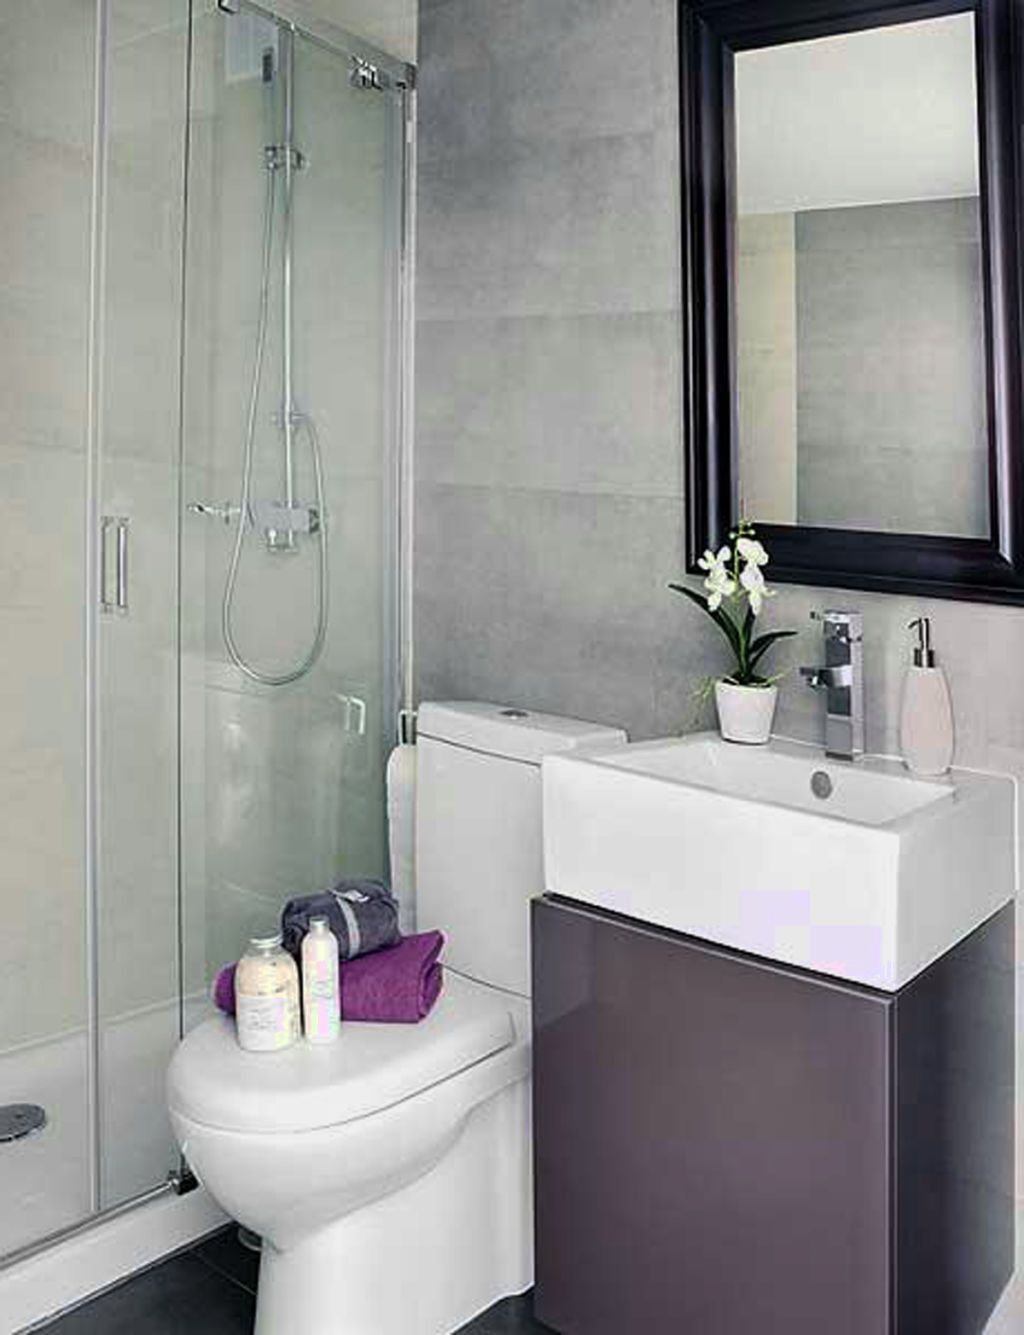 Bathroom Designs B&q http://ift.tt/2rVW6y2  Very Small ...